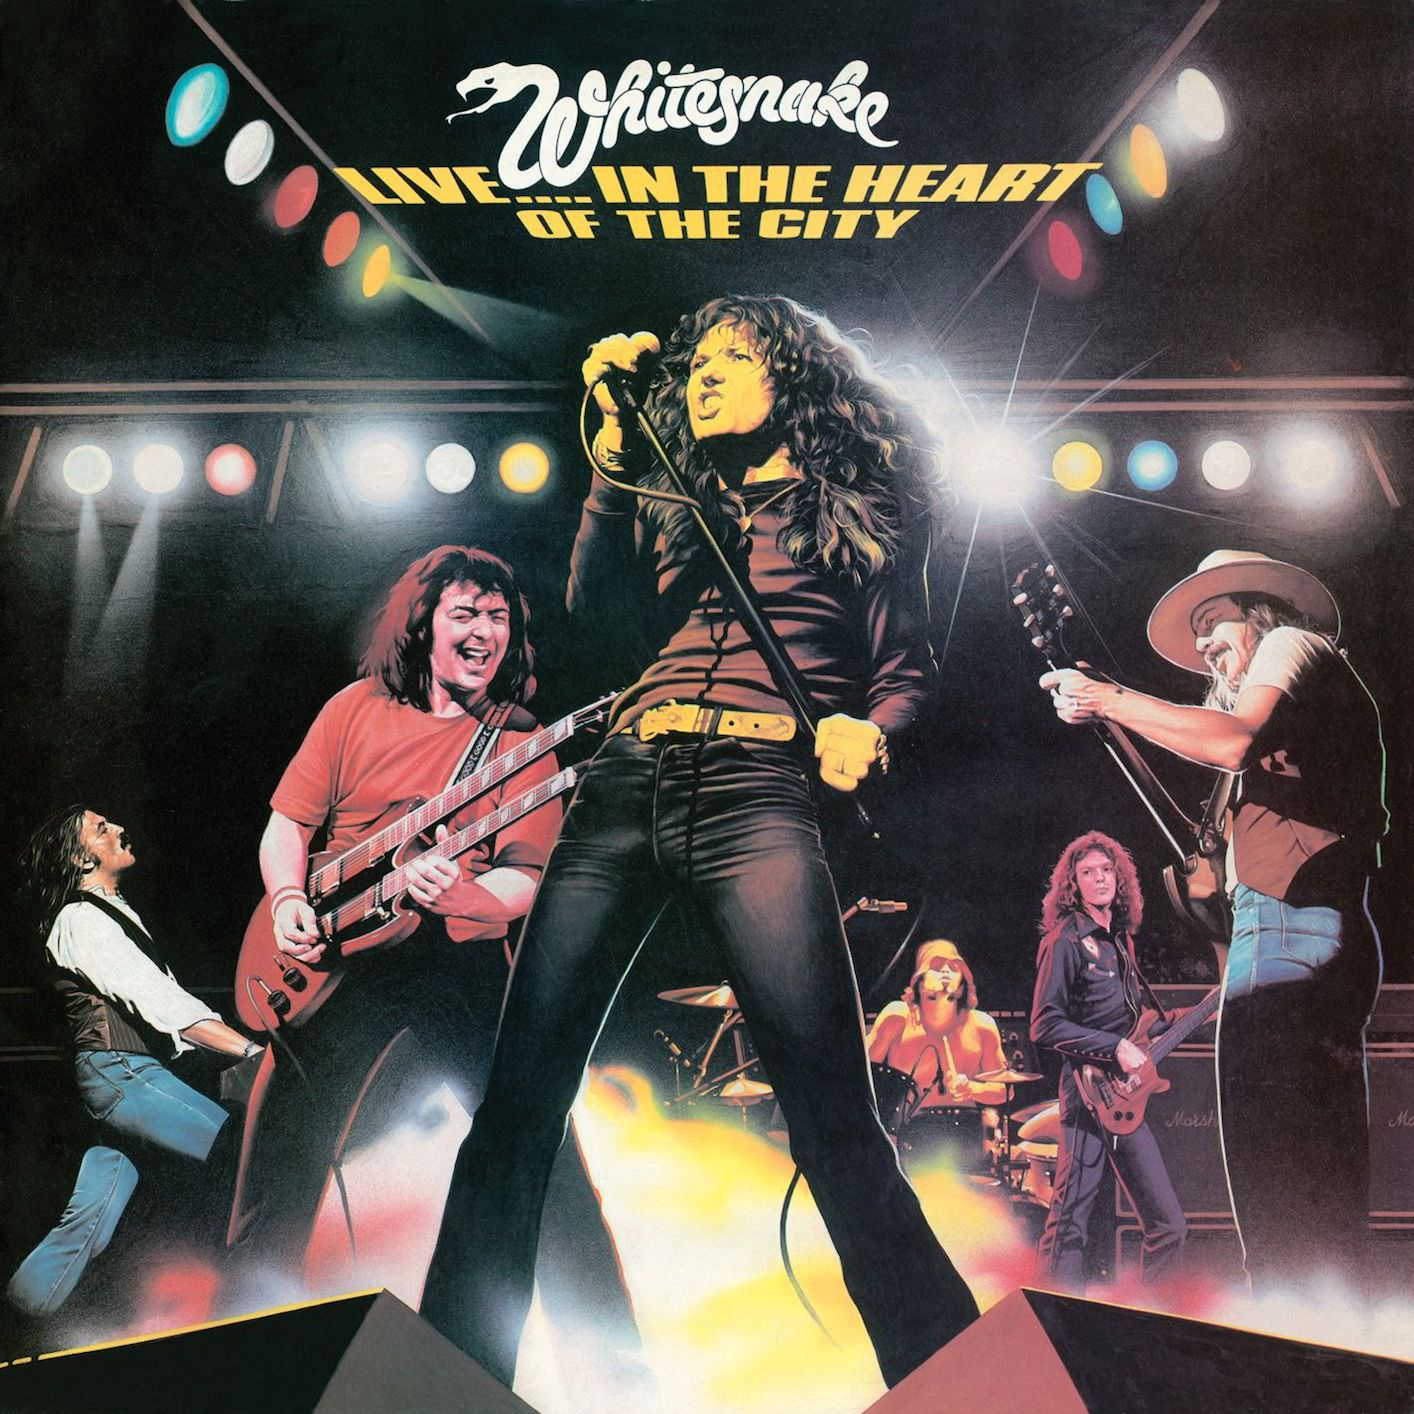 whitesnake_live_in_the_heart_of_the_city_1980.jpg